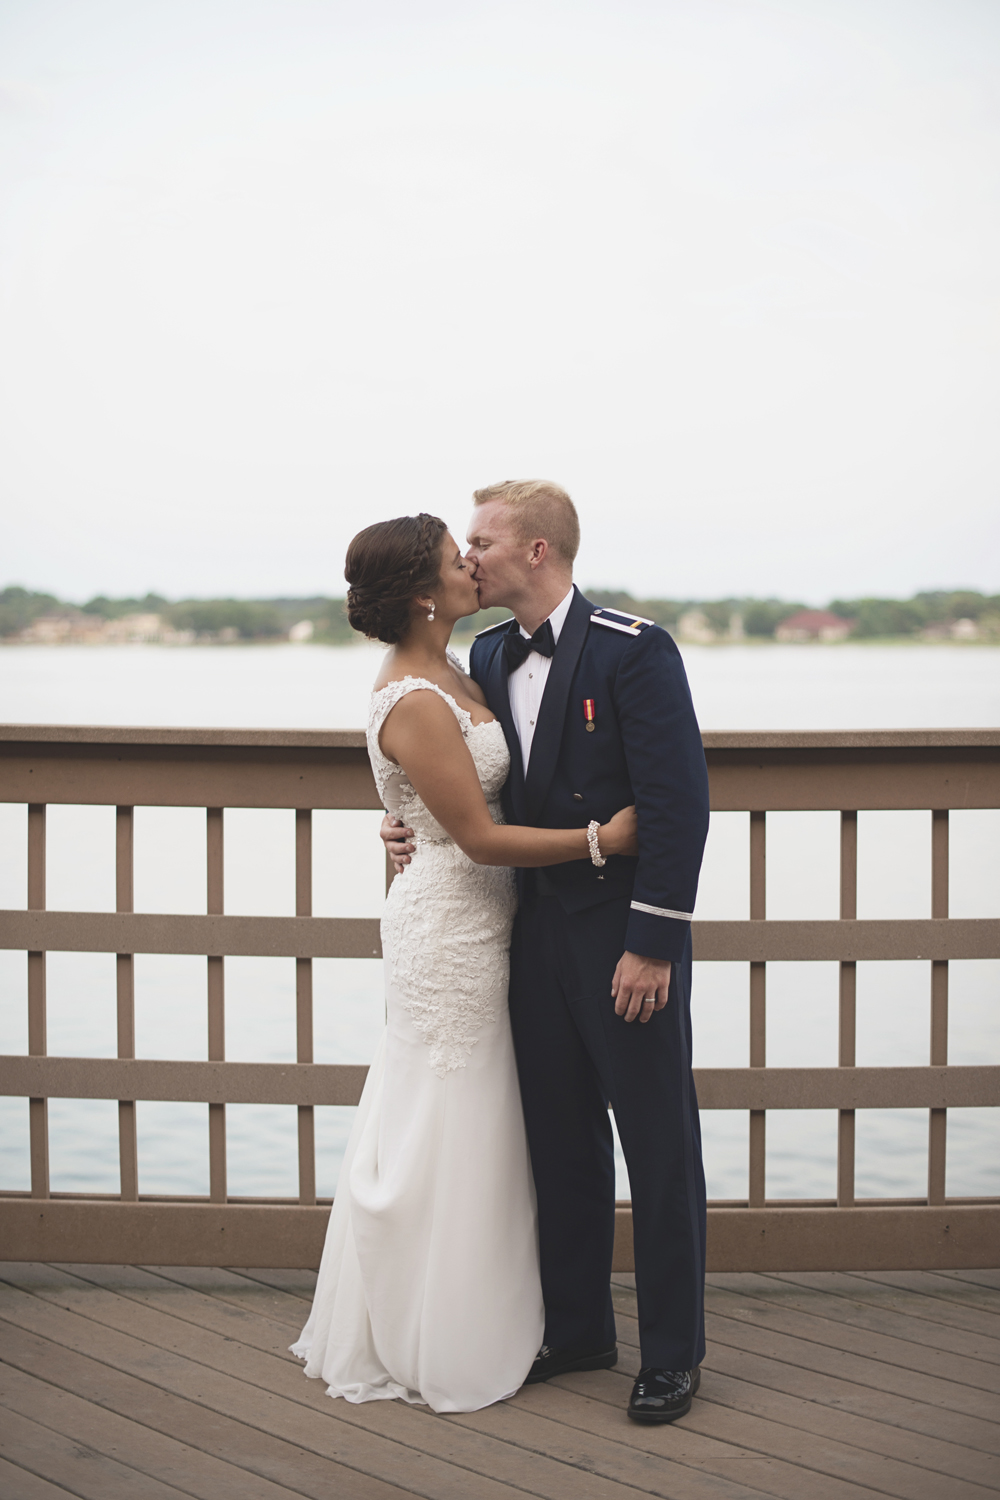 Langley Chapel Air Force Military Wedding | Hampton, Virginia | Bride & groom portraits